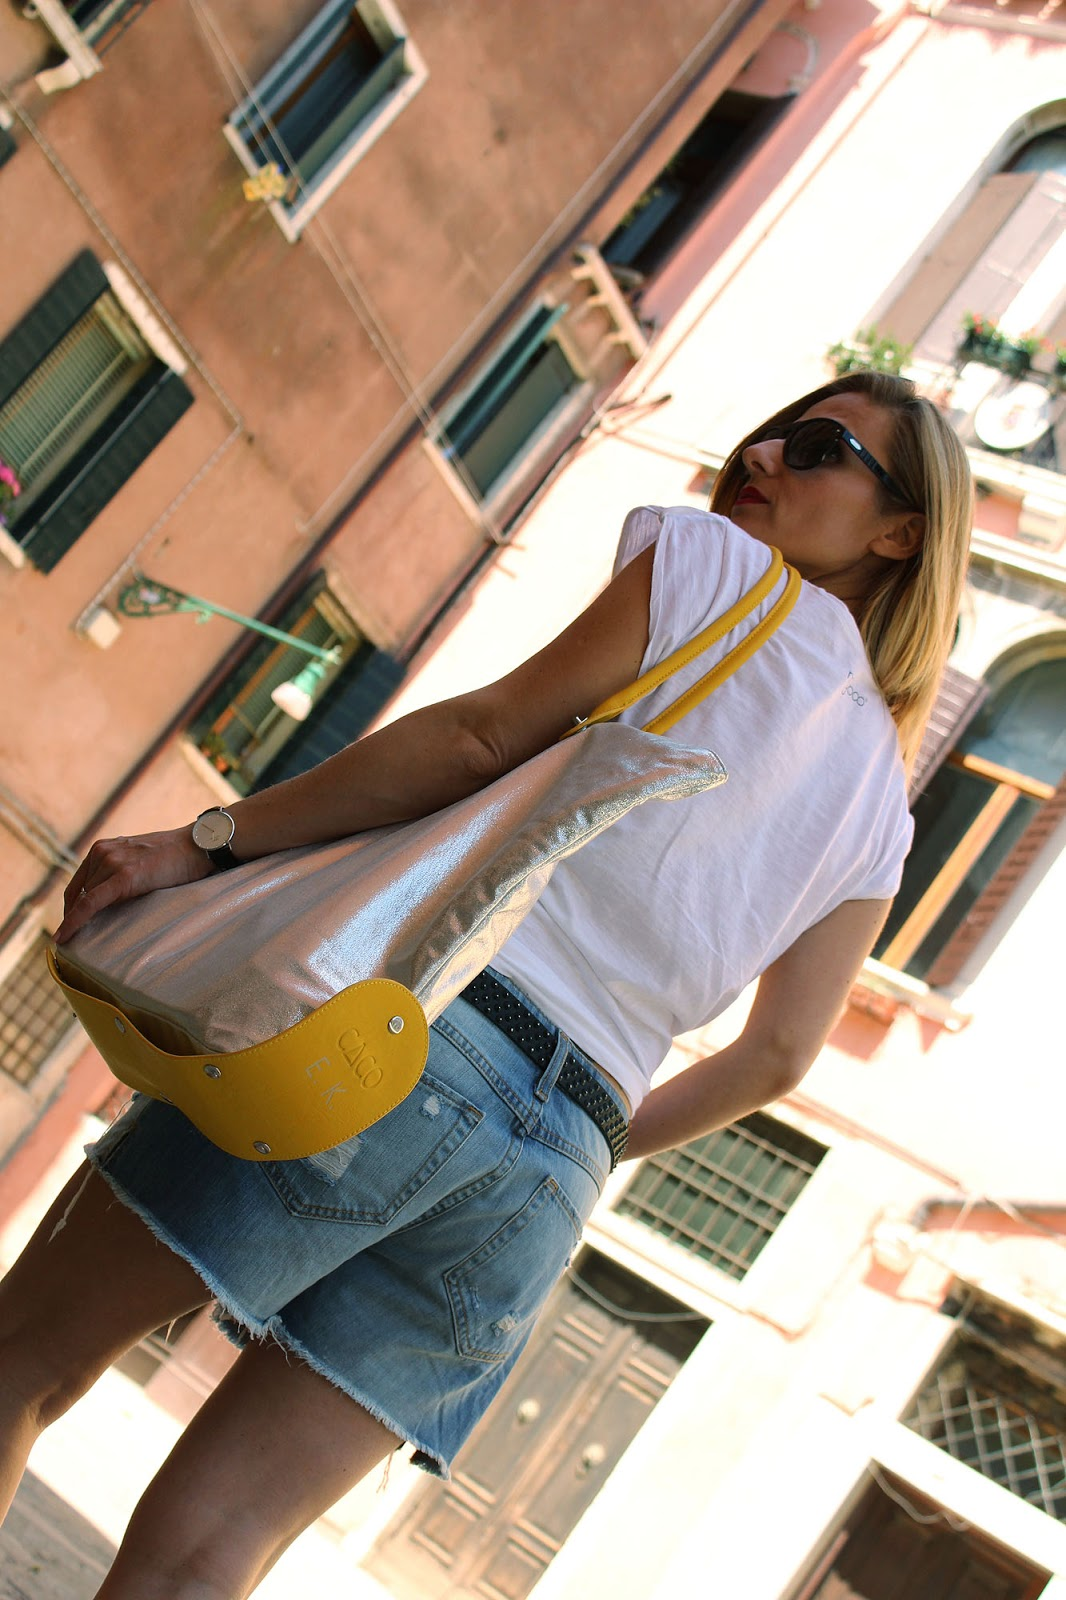 Eniwhere Fashion - Caco Design - One Bag - Venezia